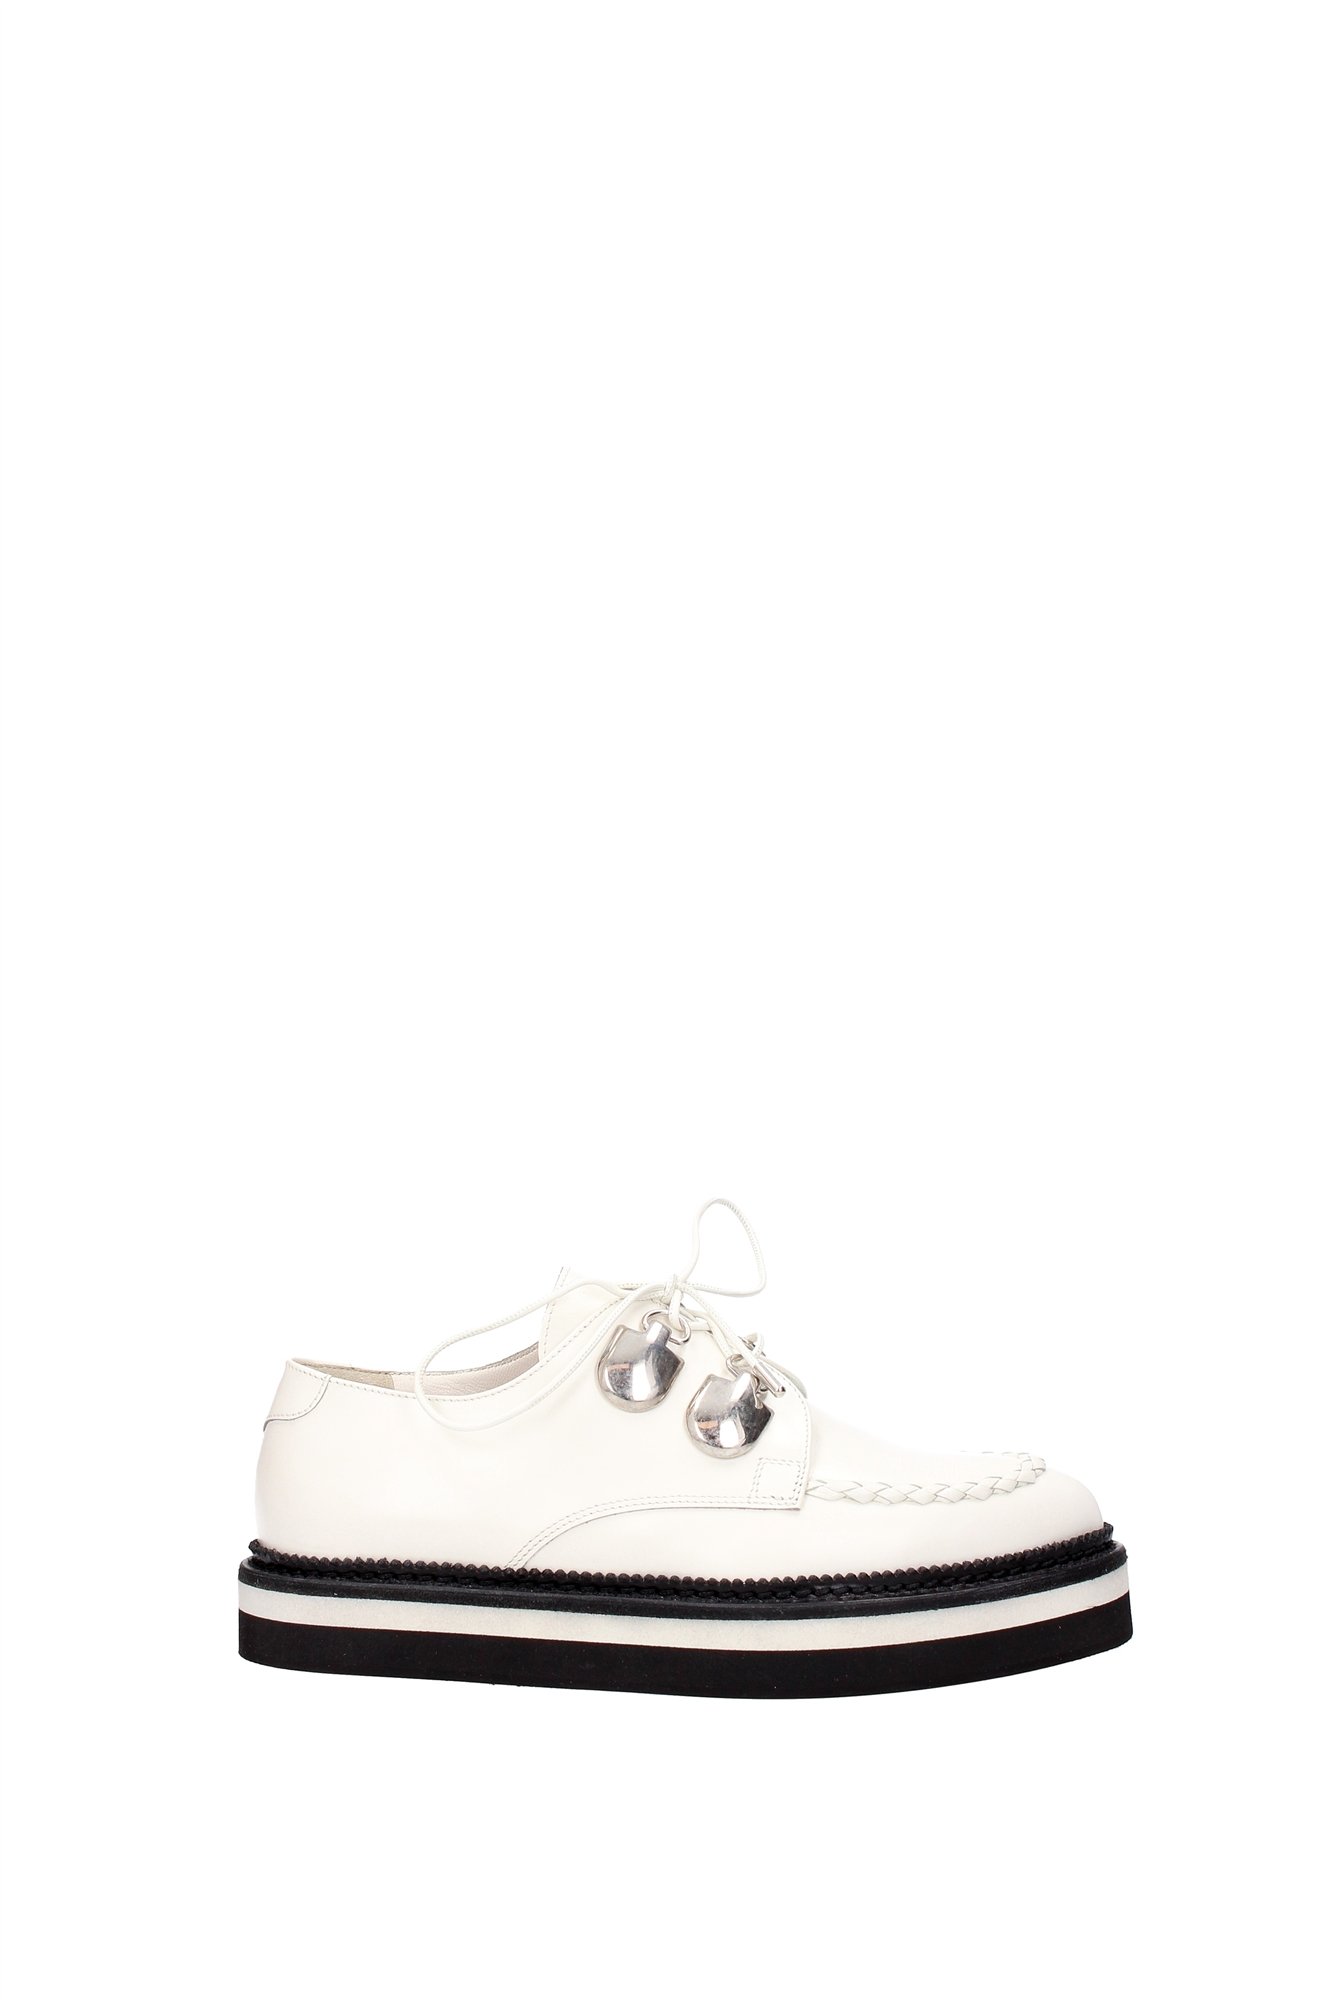 lace up shoes mcqueen leather white